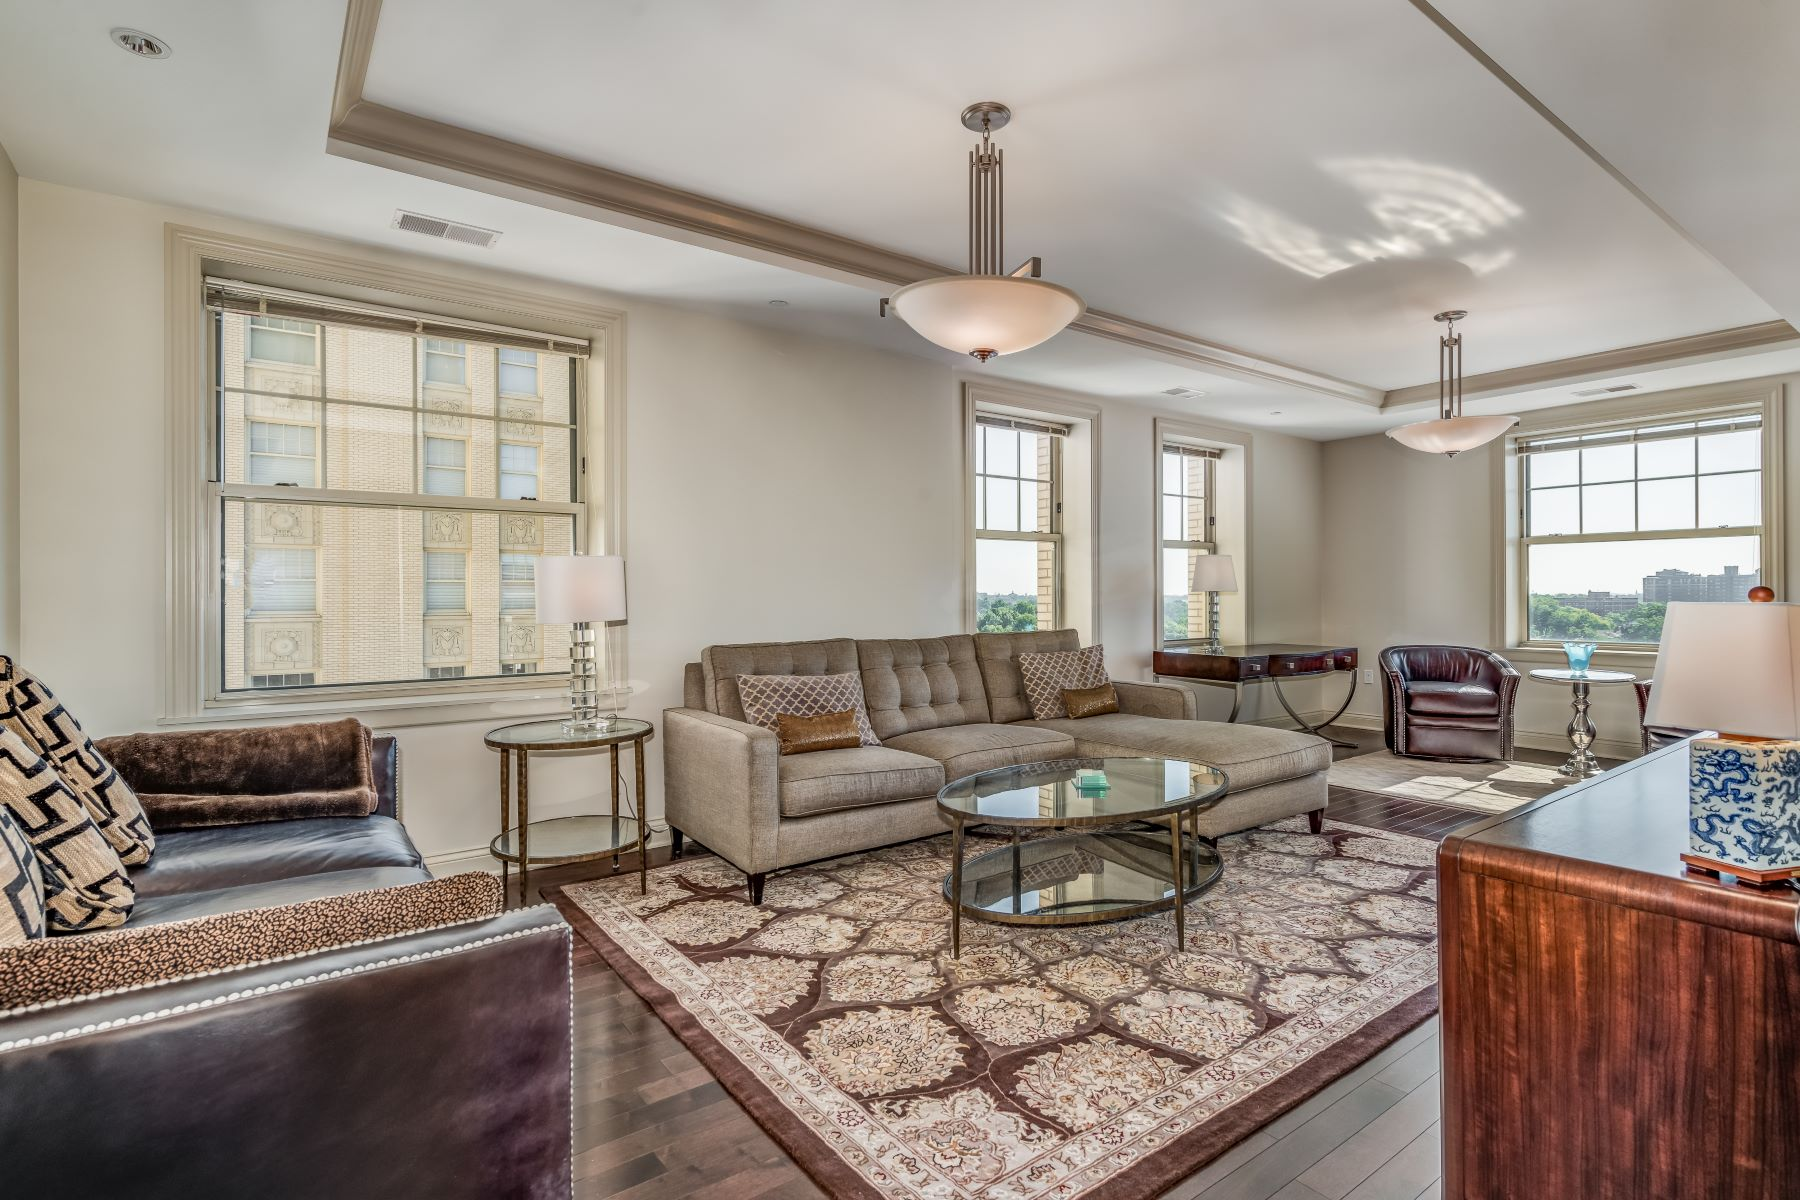 Additional photo for property listing at Luxury and Convenience in the Central West End 232 North Kingshighway Blvd #1102 St. Louis, Missouri 63108 United States